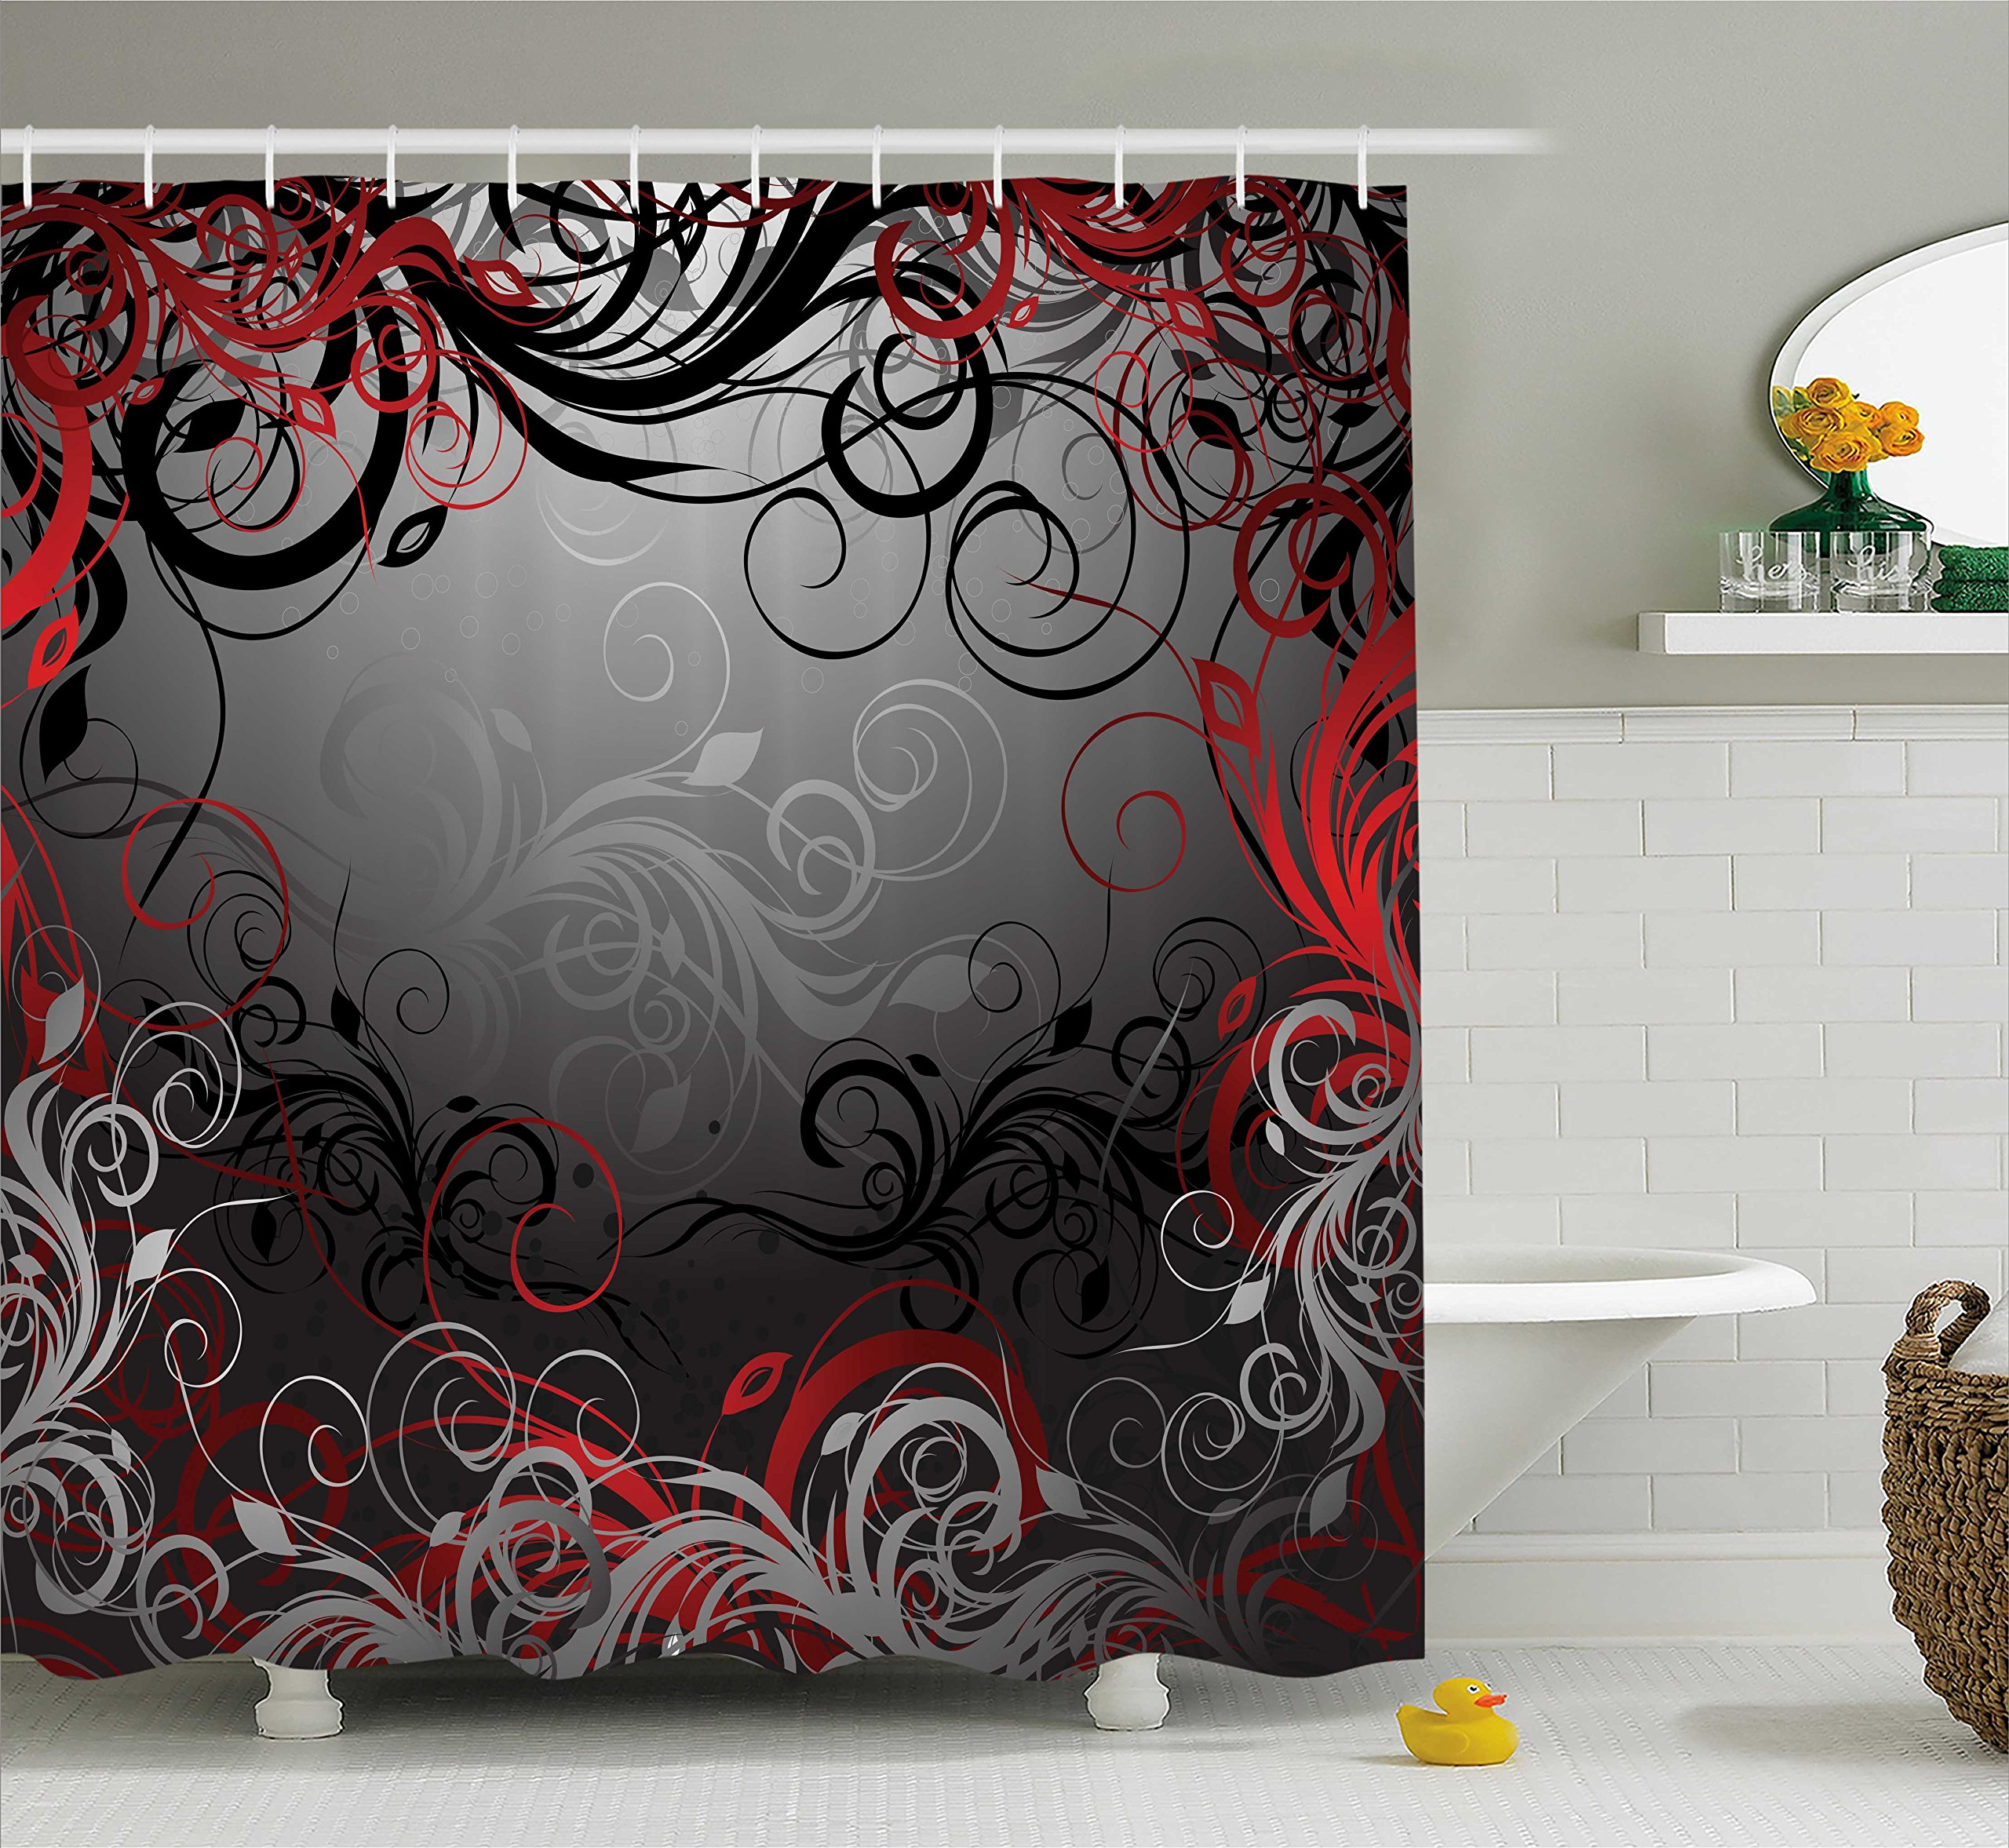 Shower Curtain Mystic Magical Forest Inspired Floral Bathroom Decor